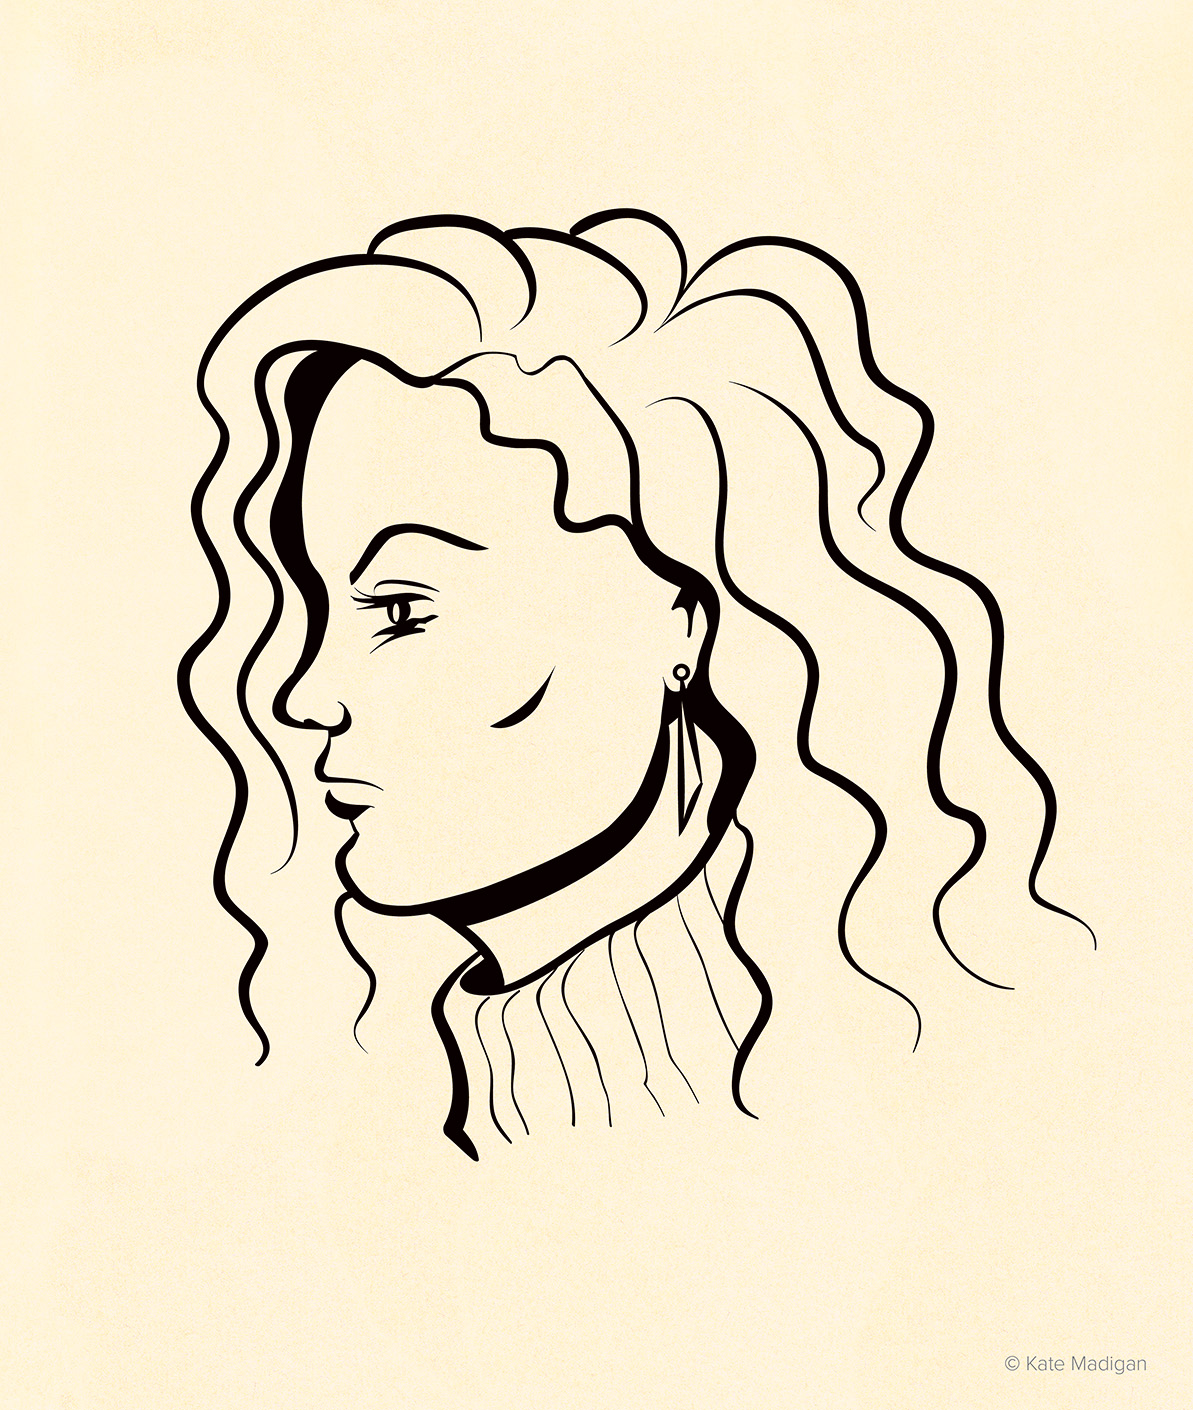 Portrait of a curly-haired student spotted in Blackwell's, Oxford. Created as part of my solo exhibition at Blackwell's Bookshop, Oxford. Copyright Kate Madigan.